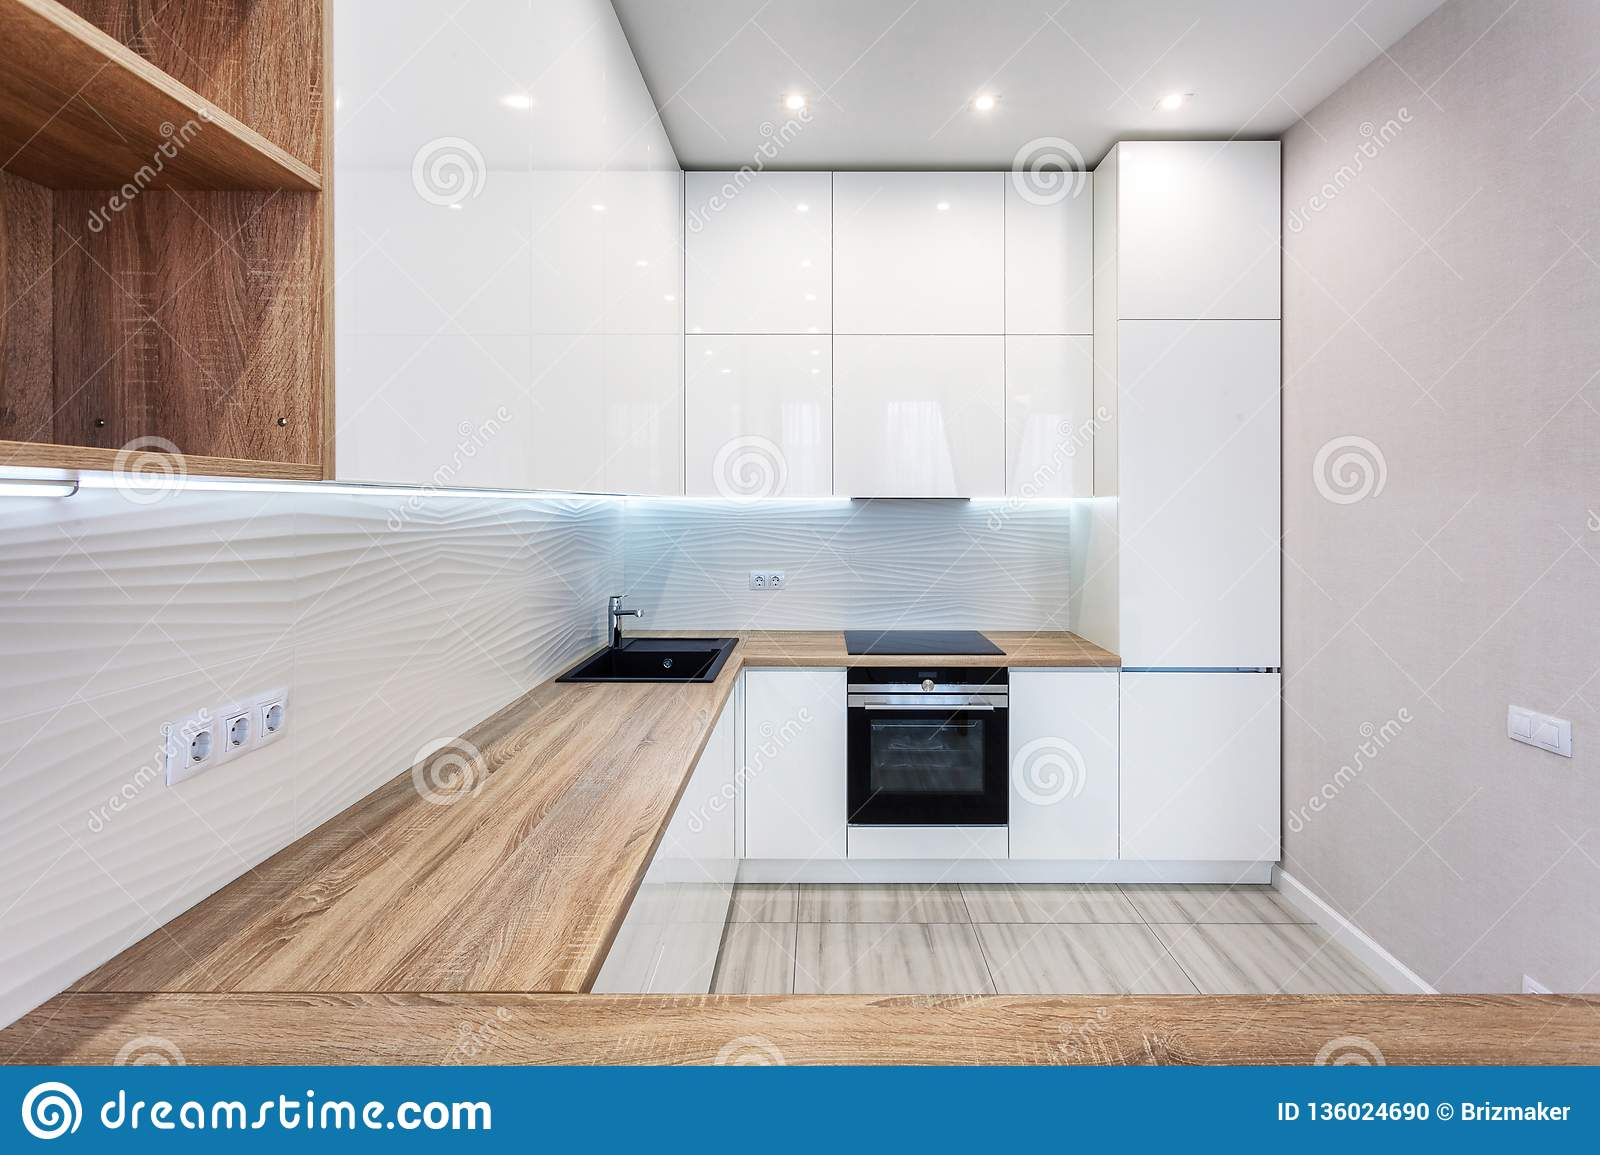 New Bright Modern Kitchen With Built In Oven And Chrome ...